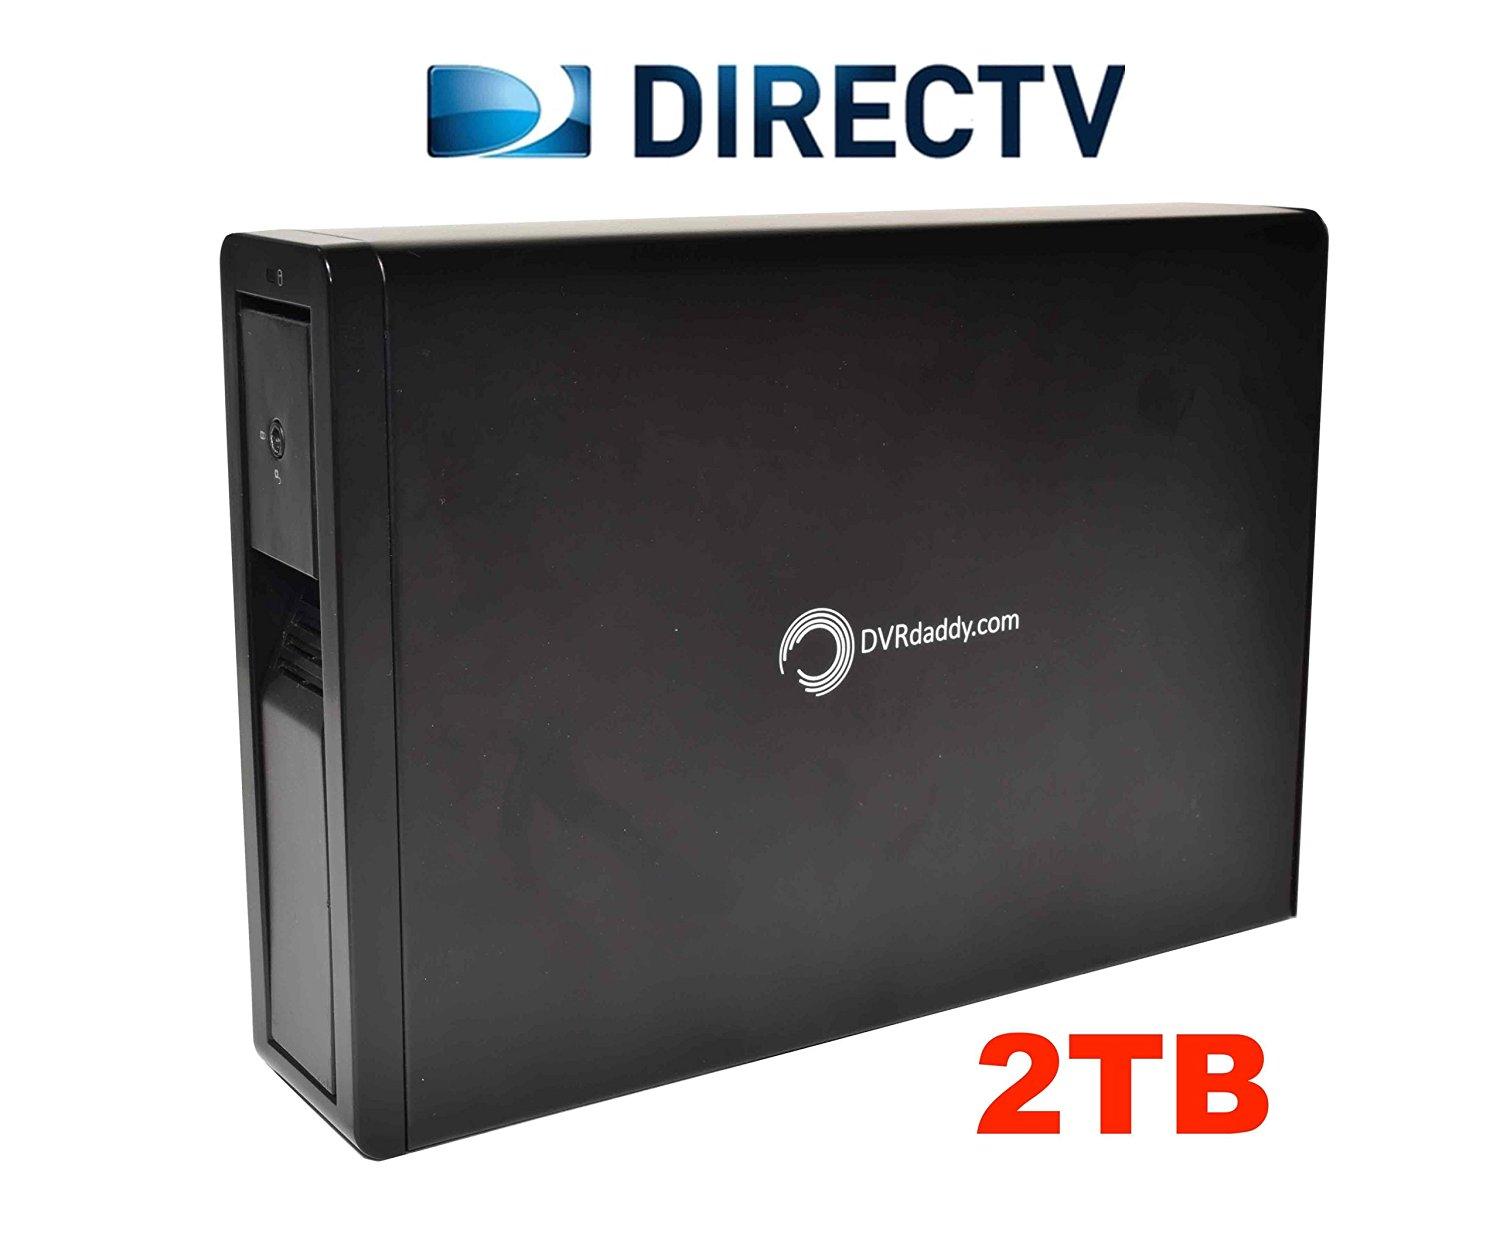 2TB External DVR Hard Drive Expander For DirecTV HR20, HR21, HR22, HR23, HR24, HR34, HR44 Genie DVR. +2000 Hours Recording Capacity and Free Shipping!